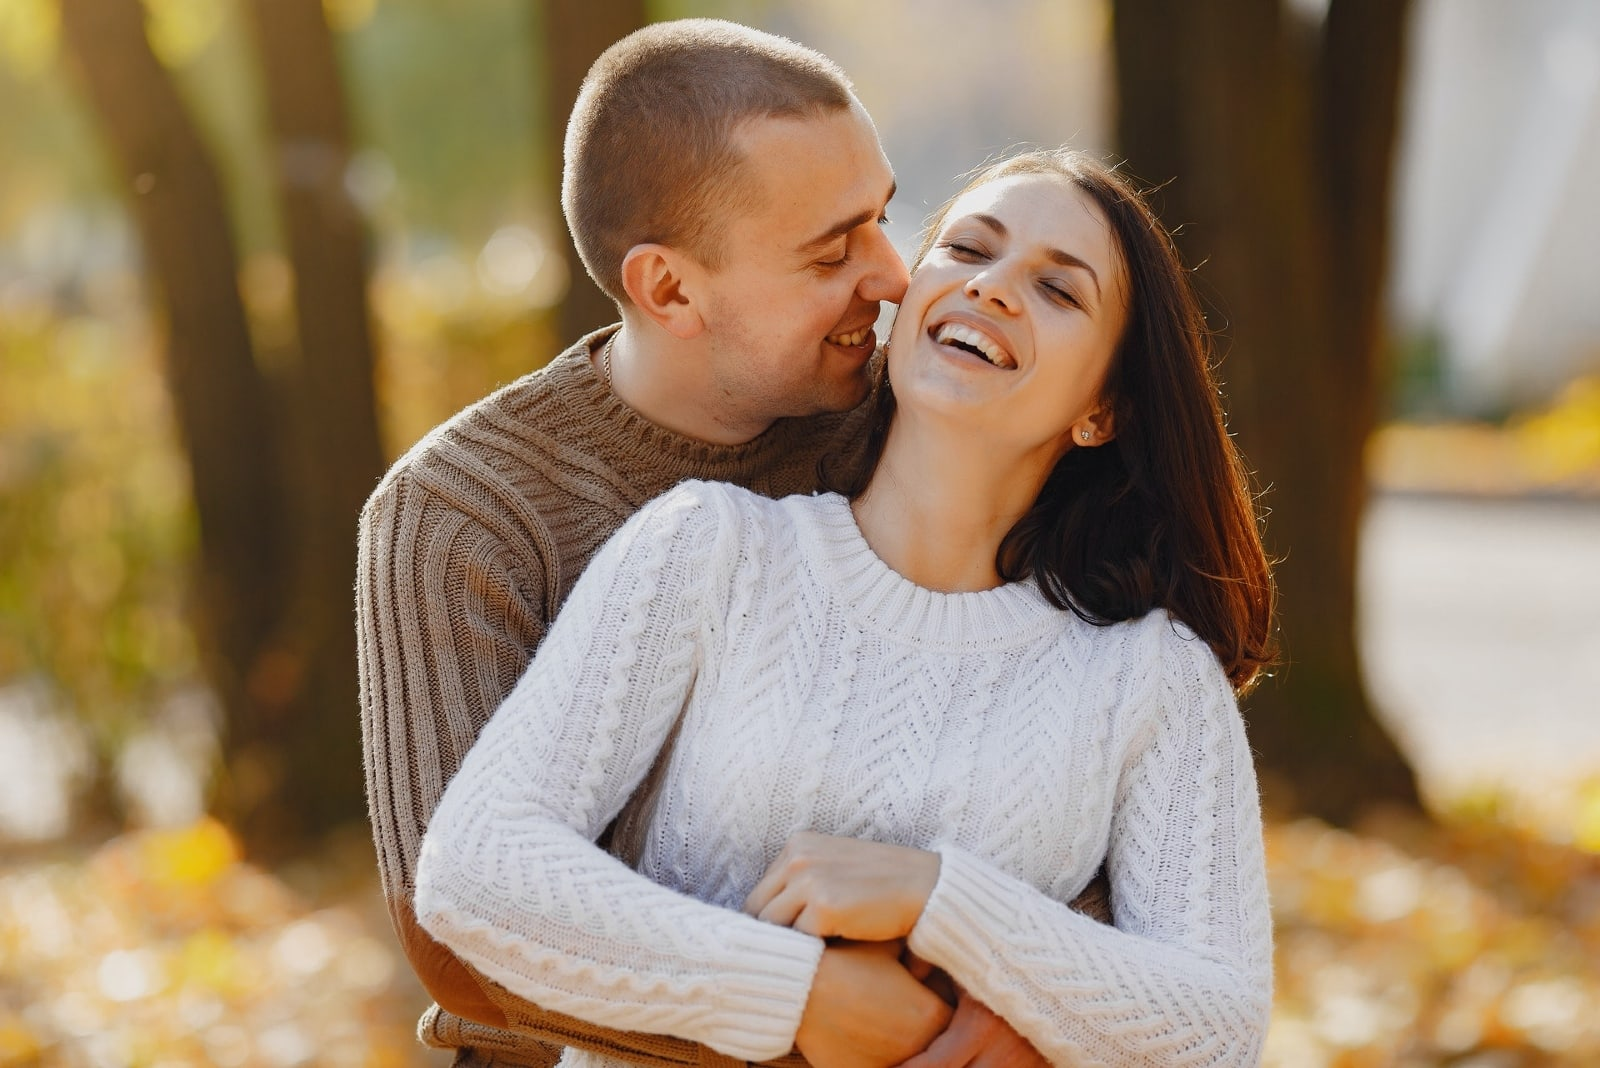 man and woman in sweaters hugging on street